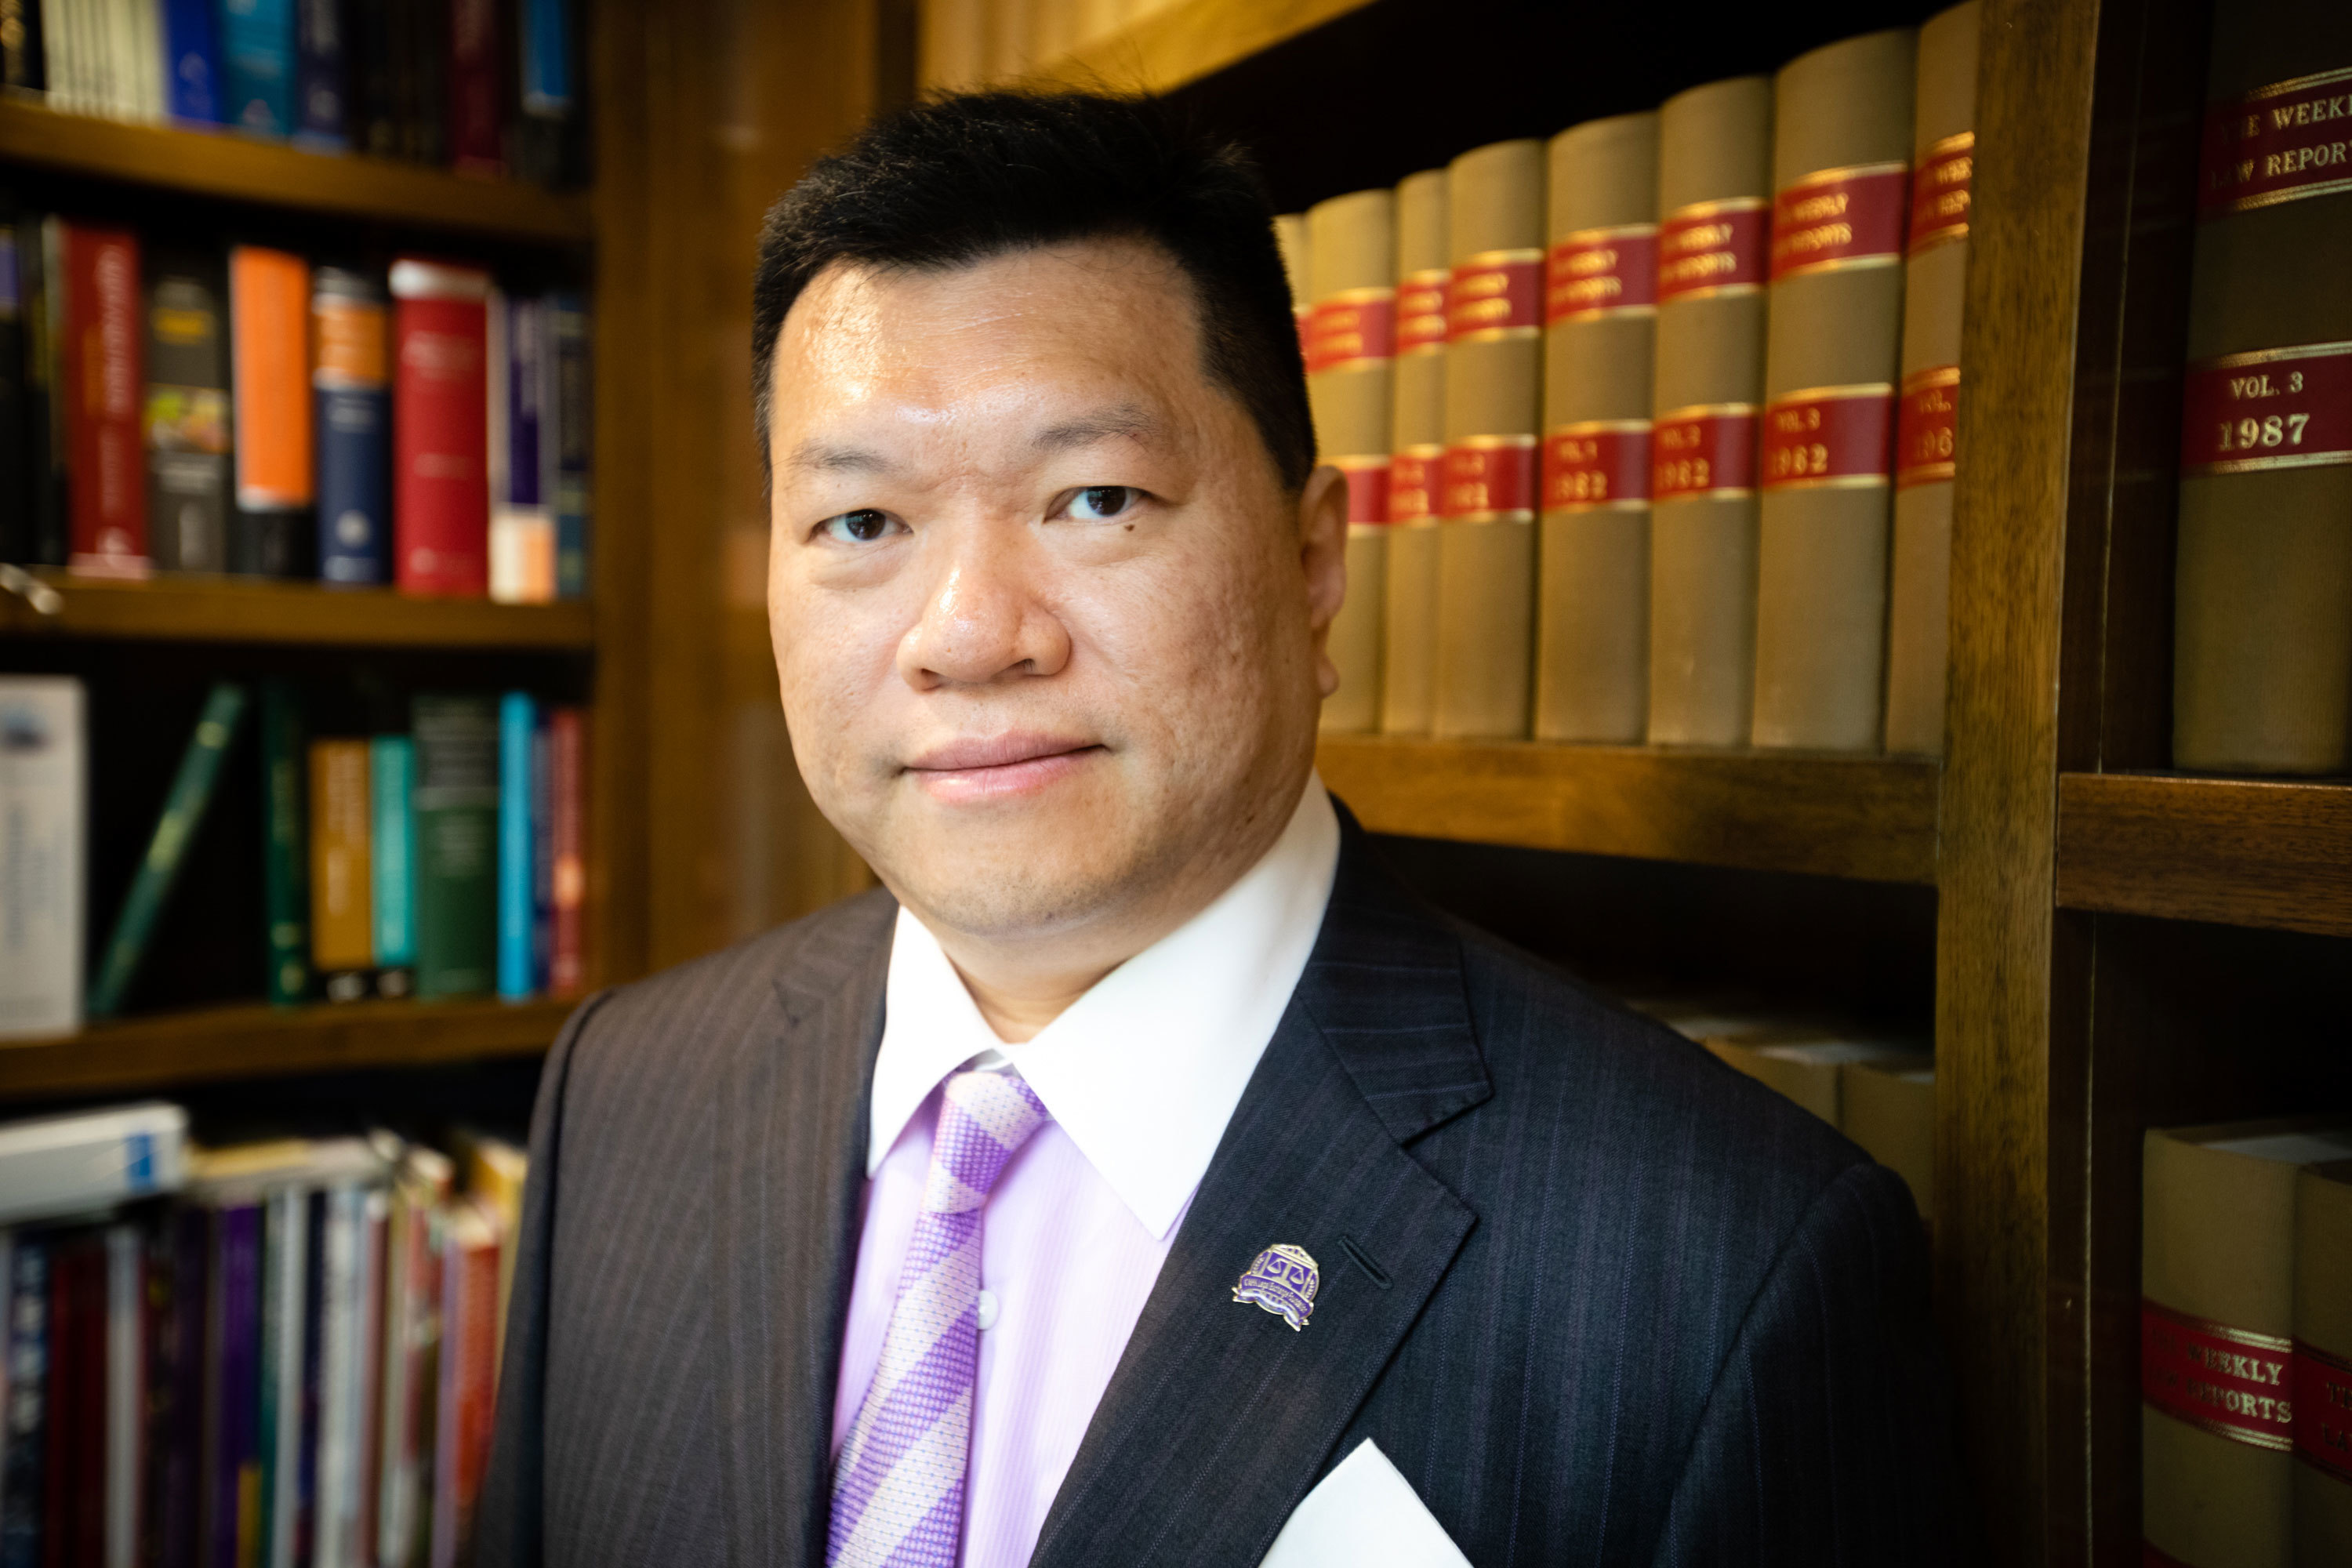 Lawyer Lawrence Ma, who is pro-Beijing, said Chinese involvement in Hong Kong guarantees the kind of economic and social stability seen on the mainland. (Saša Petricic/CBC)